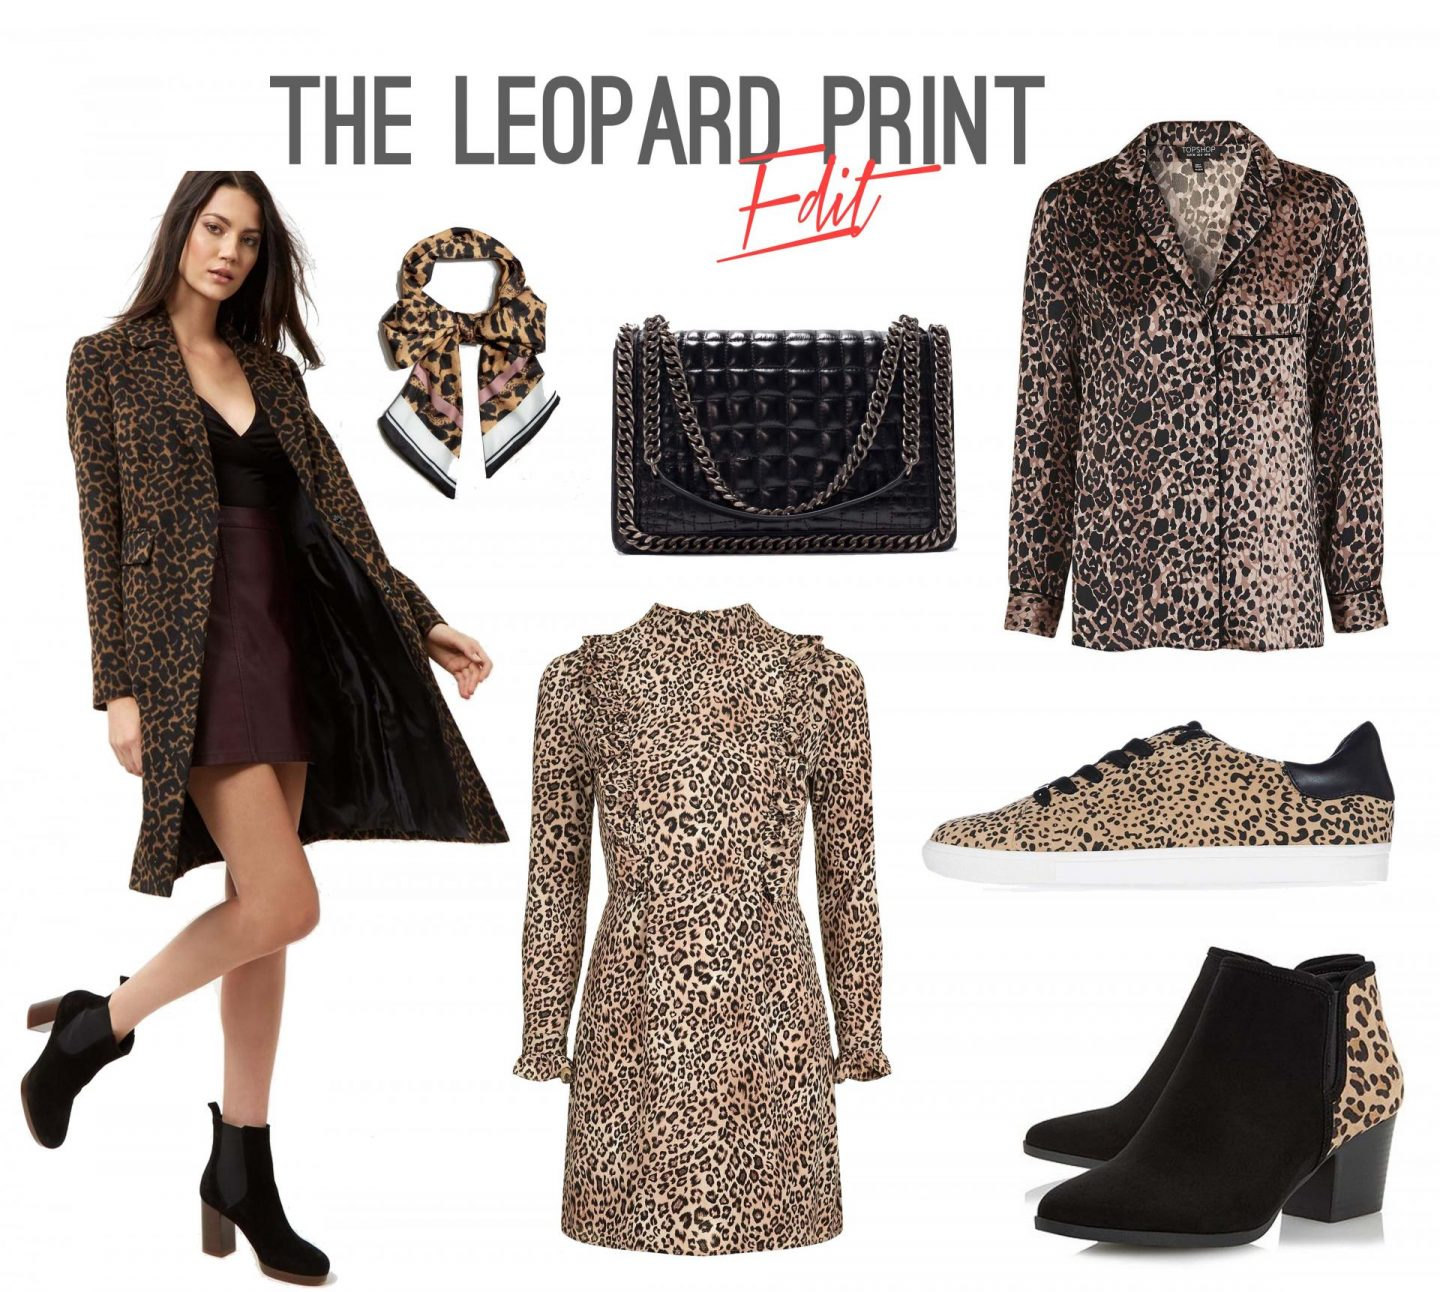 october-fashion-wishlist-the-leopard-print-edit-rachel-nicole-uk-blogger